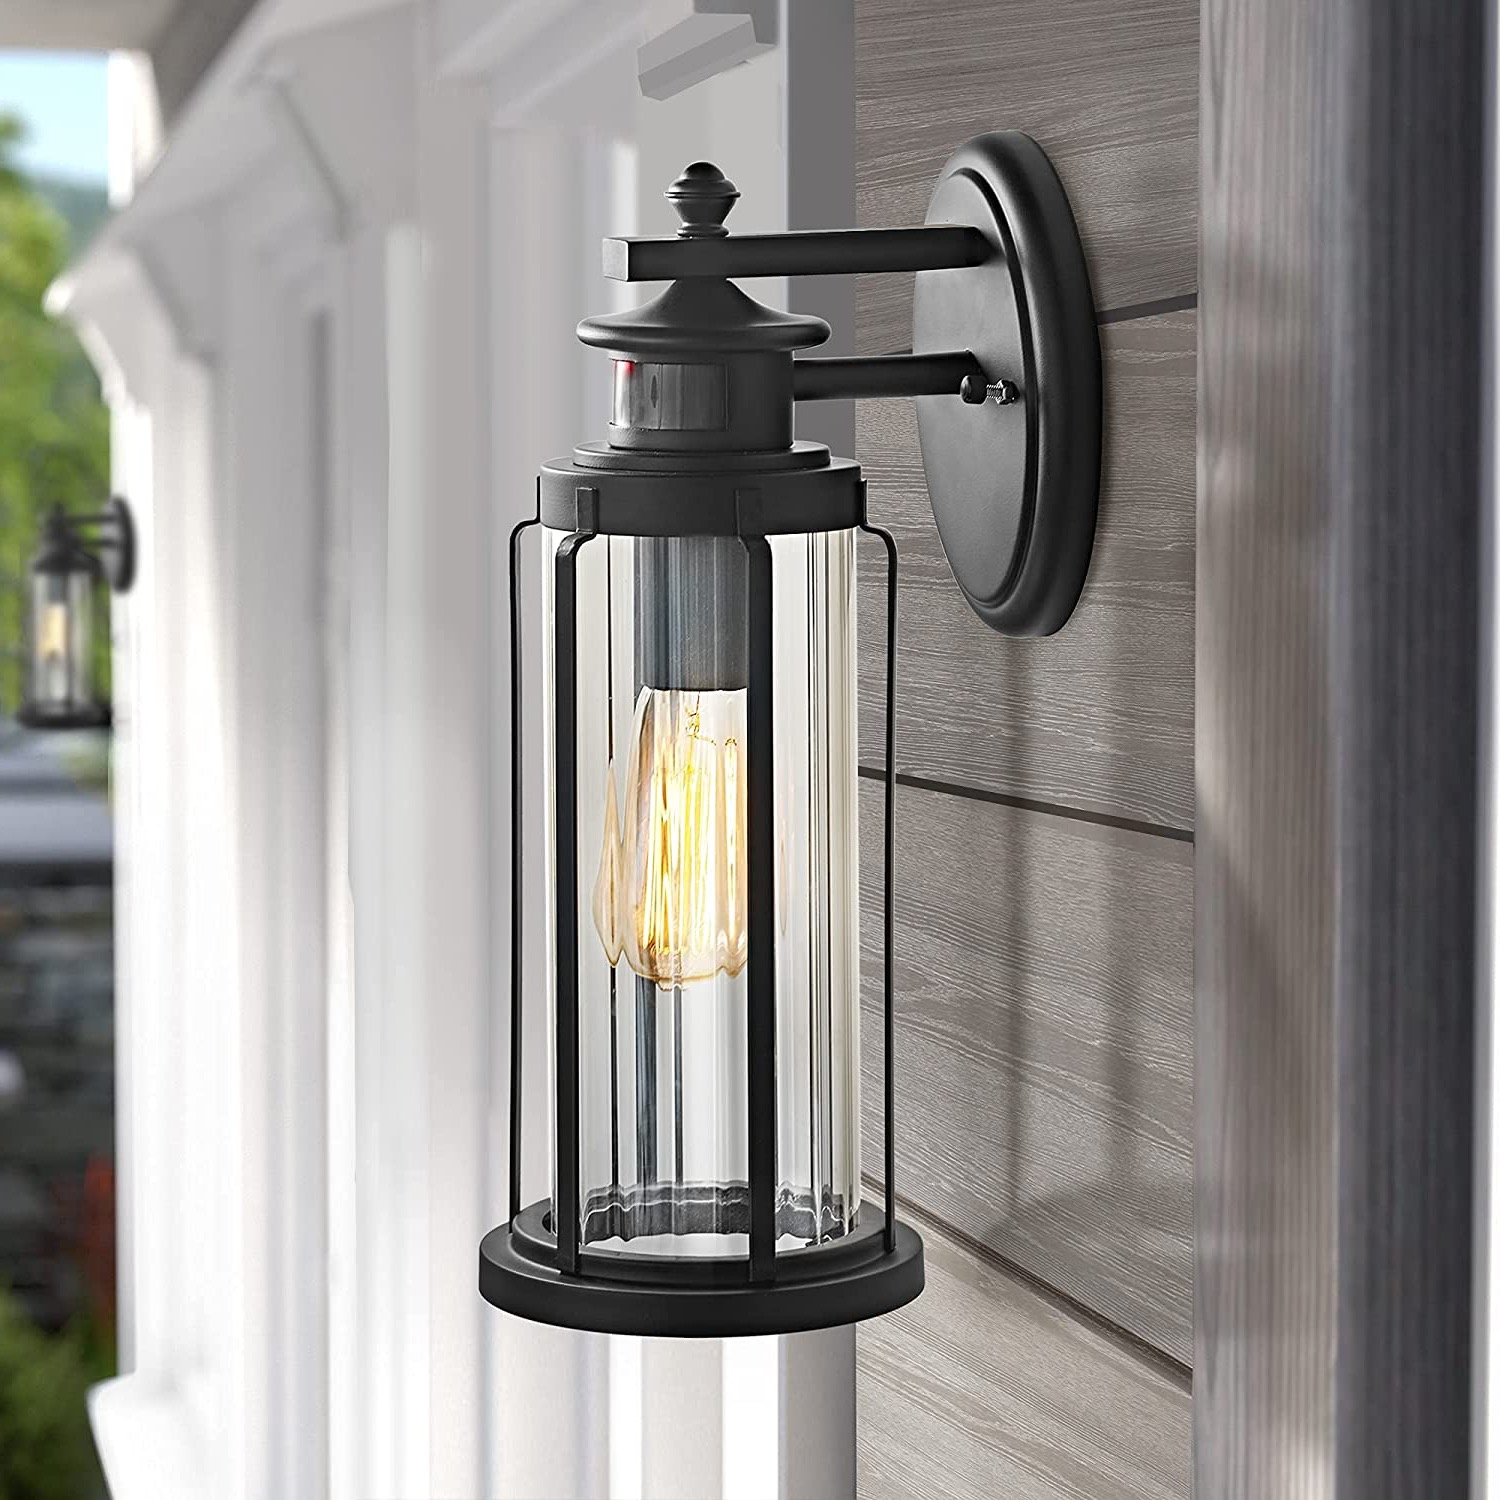 Journey Terrace Outdoor Wall Lanterns (View 7 of 9)